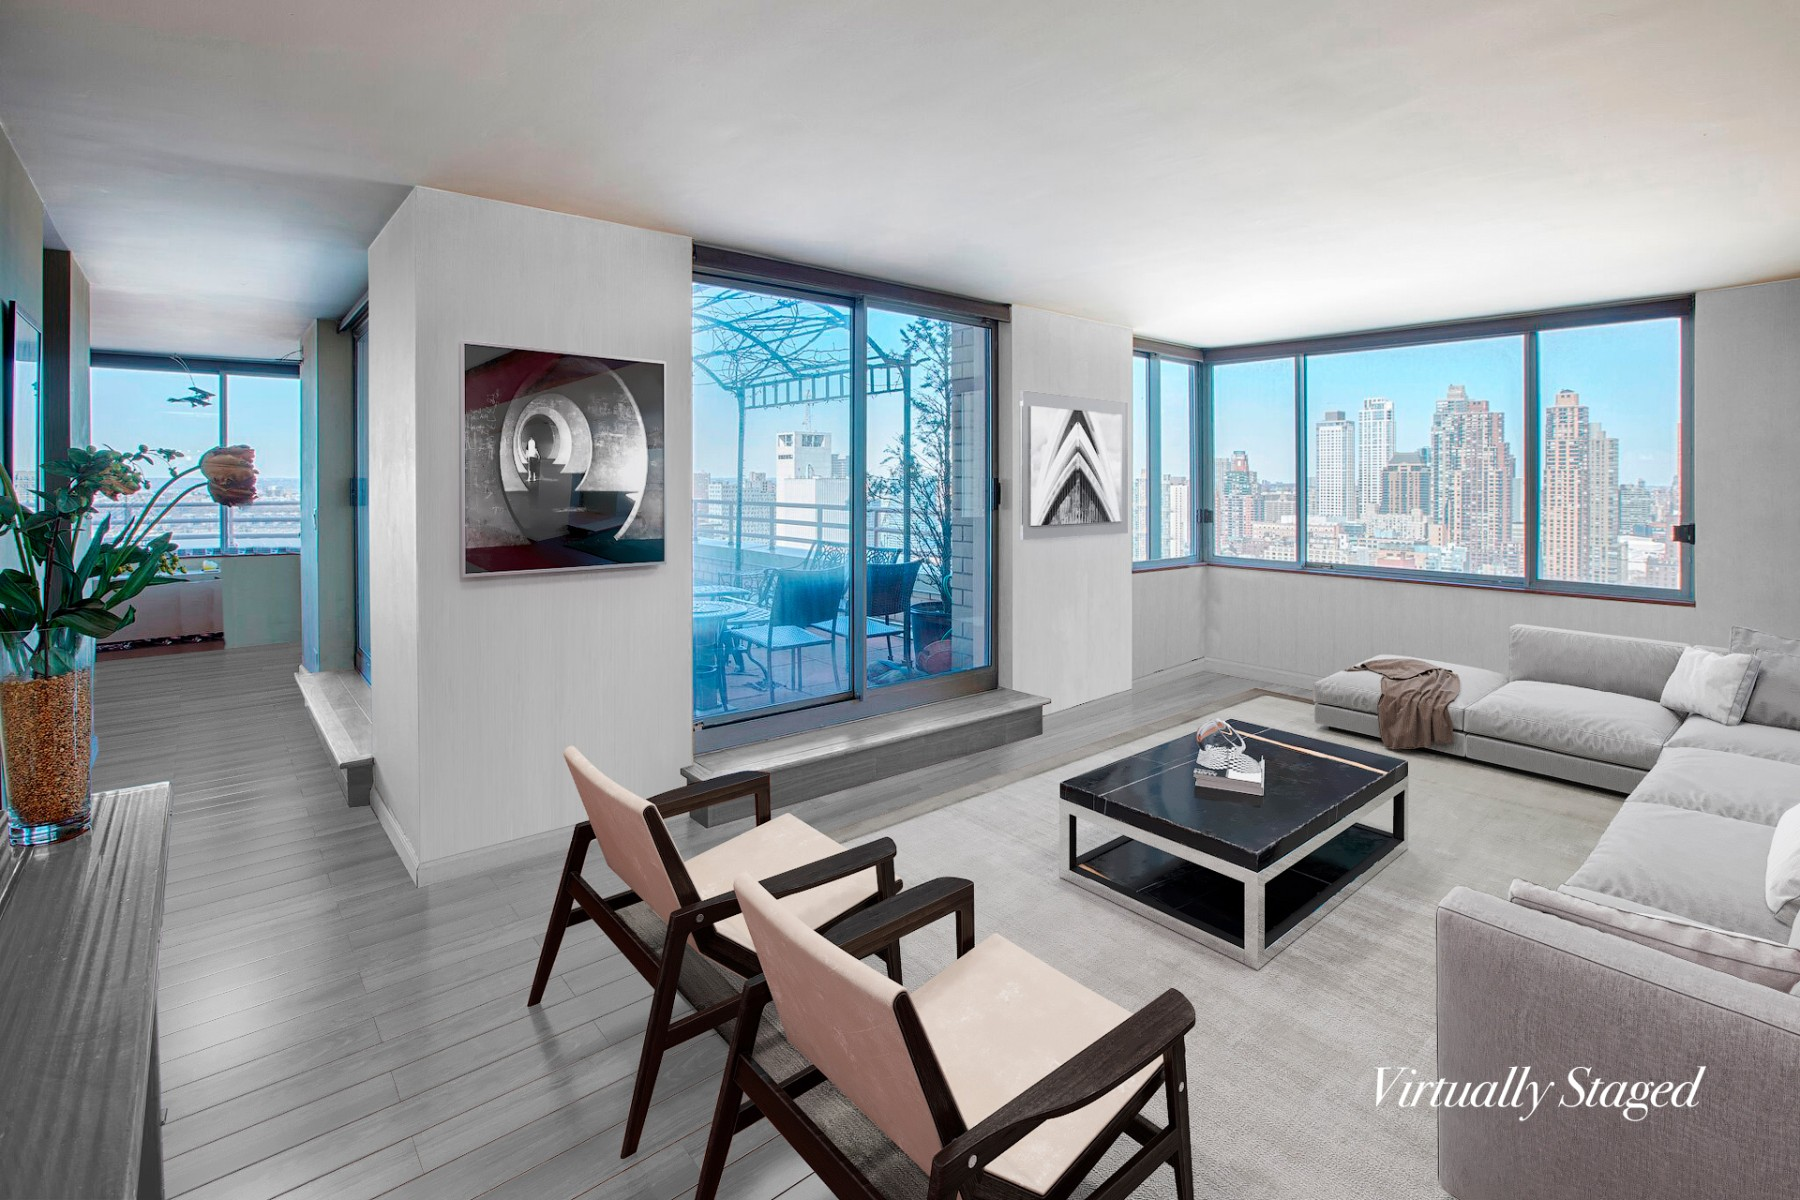 "Step into your new Penthouse and you will be mesmerized by the dramatic unobstructed West and North views from every room, especially your unique nearly 400 square foot terrace overlooking the Hudson River and Northern Manhattan. This split 2 bedroom, 2.5 bathroom palace in the sky is located on the Penthouse level of Two Worldwide Plaza.  It is one of the only units with such a large outdoor space which makes it extremely unique.  Imagine coming home from a long day at work, step outside to watch the magical sunset with a refreshing glass of wine in hand. You can watch the cruise ships go by on weekends and boats sail along the Hudson. From the minute you walk through the door, you will love the natural light cascading through the windows.   Bring lots of place settings and all of your cooking gadgets because this open chefs kitchen is equipped with GE Stainless Steel appliances and granite countertops. There is a separate dining room overlooking the terrace with magical views of the Hudson River and Northern Manhattan. This unit is equipped with a dishwasher and washer/dryer tucked away in a closet. The second bedroom has a fold up Murphy bed so it can function as a bedroom at night and office by day.Two Worldwide Plaza includes amenities such as a 24 hour Concierge, doorman, live in resident manager, eight laundry rooms, roof deck with beautiful open views, a ""Resident's only"" courtyard and resident's lounge. David Barton's 40,000 sq ft. newest gym TMPL with the latest technology, saltwater pool and sauna is connected to the building. Monthly and annual memberships available. The Residences at Worldwide Plaza is a full service condominium located in the heart of Manhattan's theater district and the Midtown Financial District, steps to Central Park, Lincoln Center, Rockefeller Center, the Hudson River Park, St. Patrick's Cathedral, The Citys best Restaurants, Shopping and Museums. There is a garage attached to the building available to residents.  It is located just steps to the C, E, 1, W, N, R, B, D, F and M subway lines and cross-town buses."